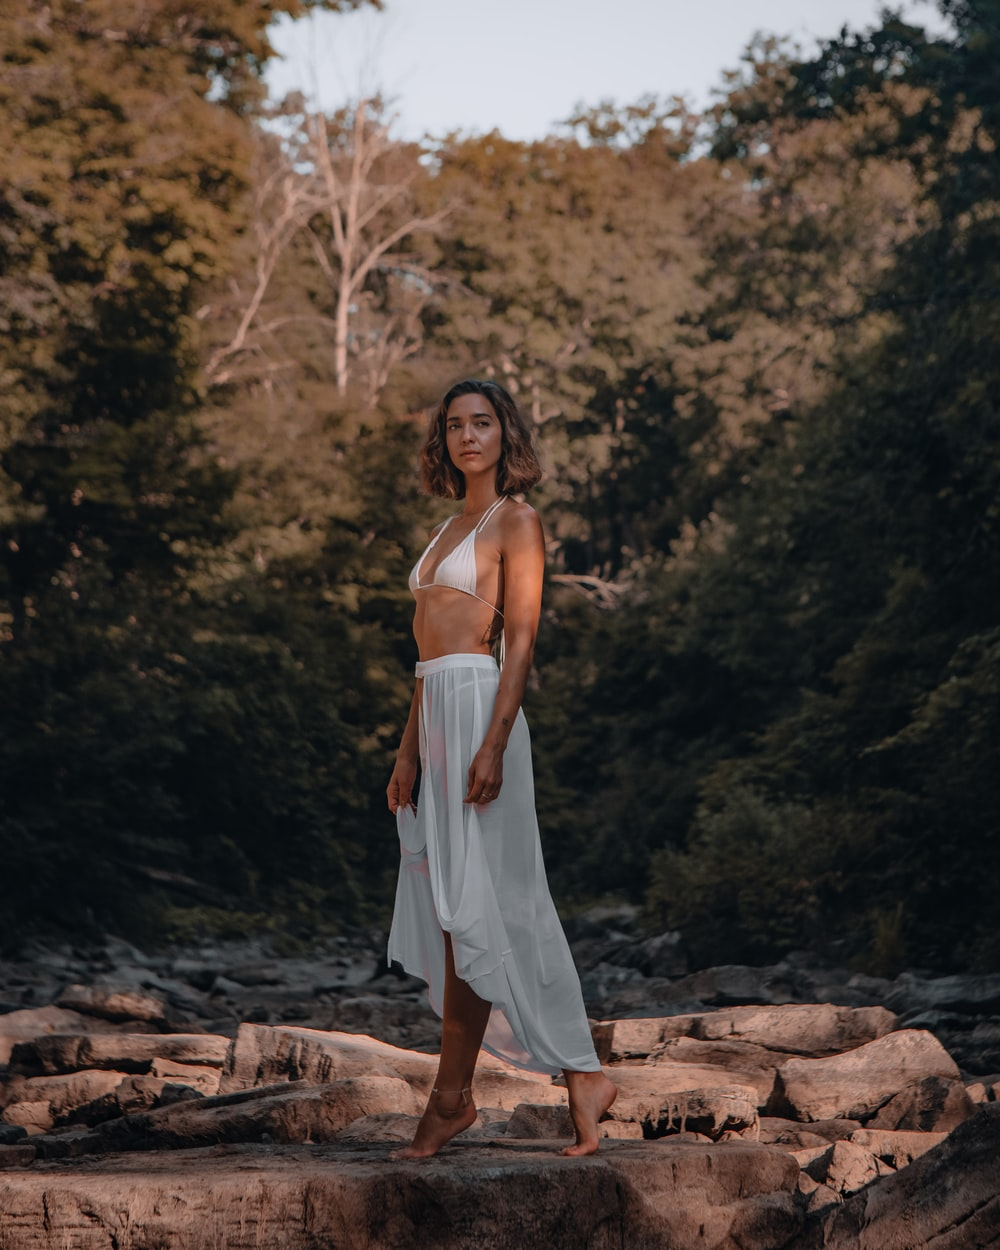 woman in white spaghetti strap dress standing on brown rock during daytime